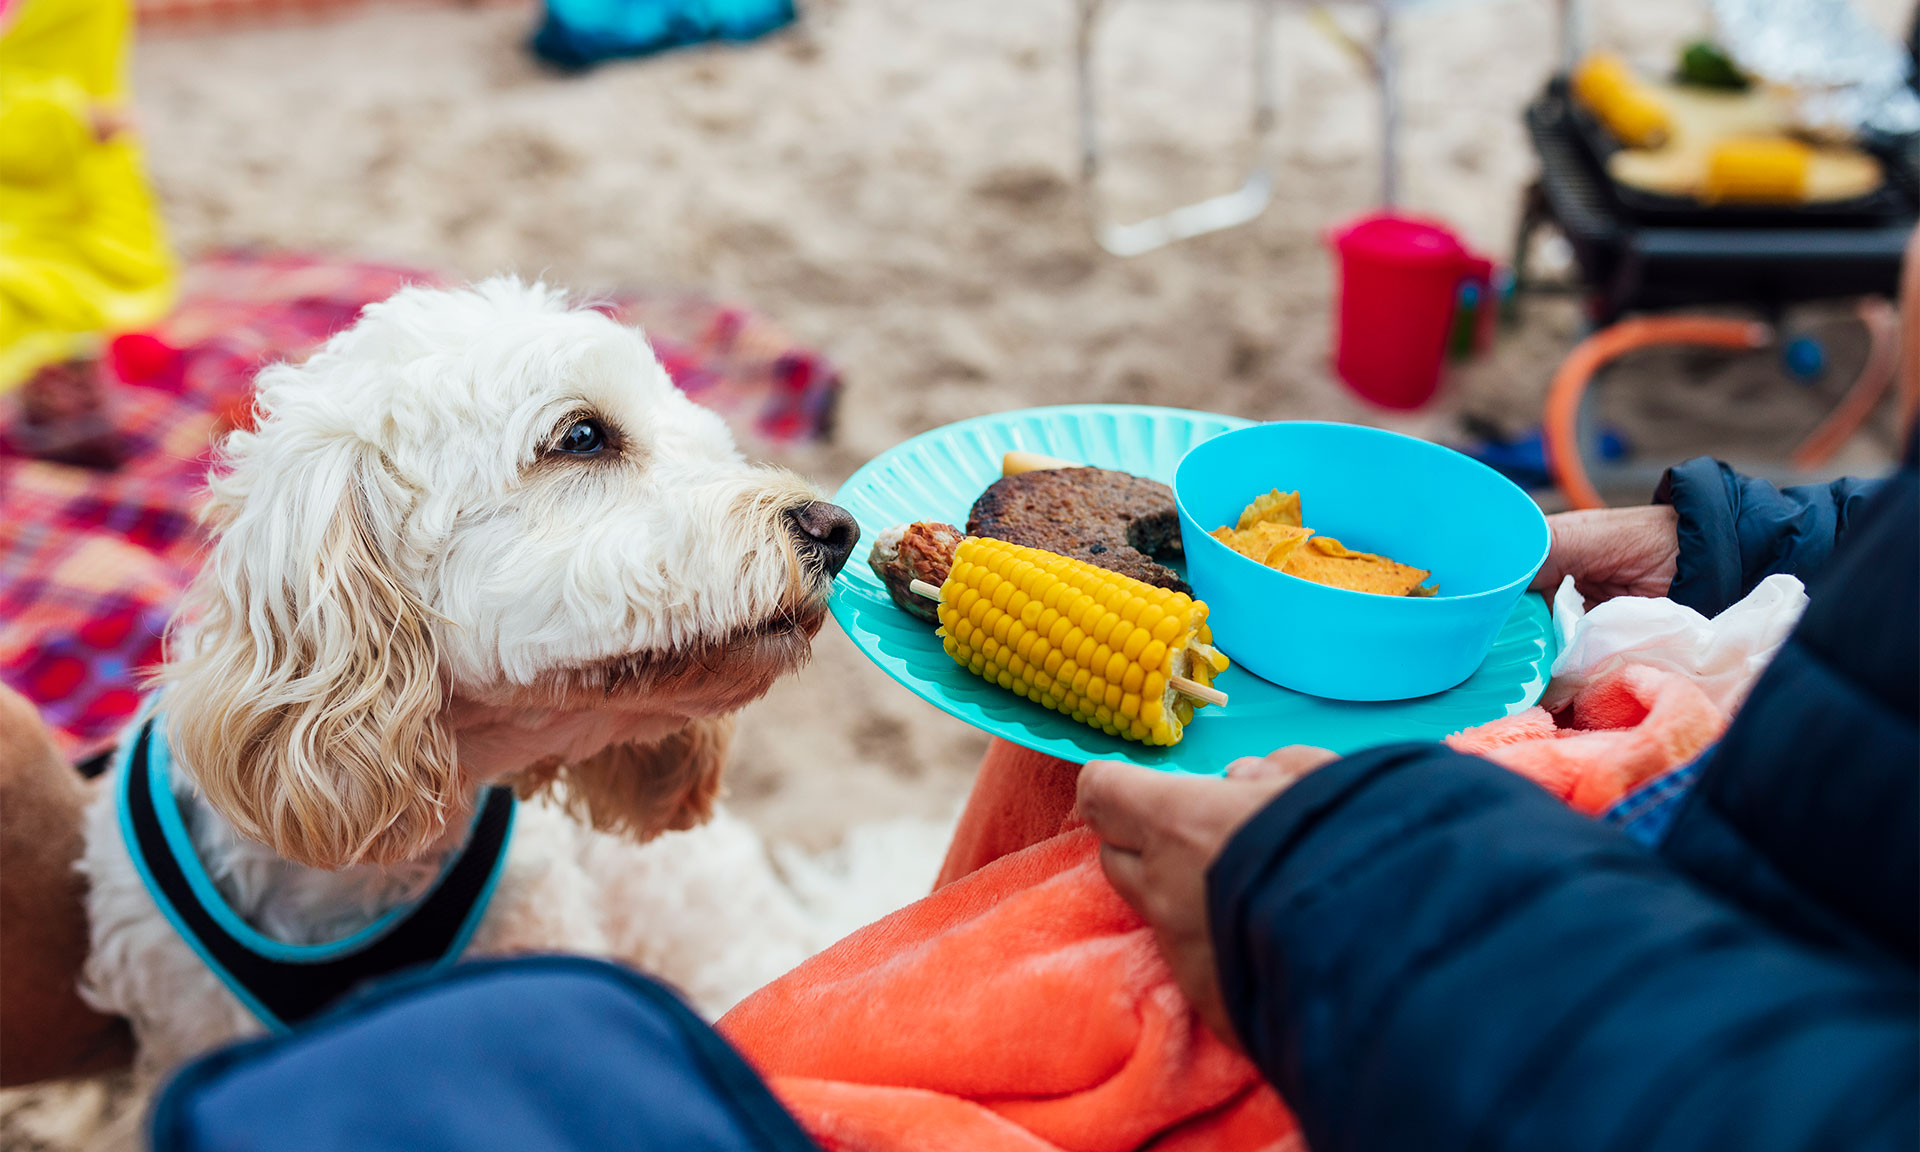 7 summer barbecue foods you should never feed to your dog – Which? News